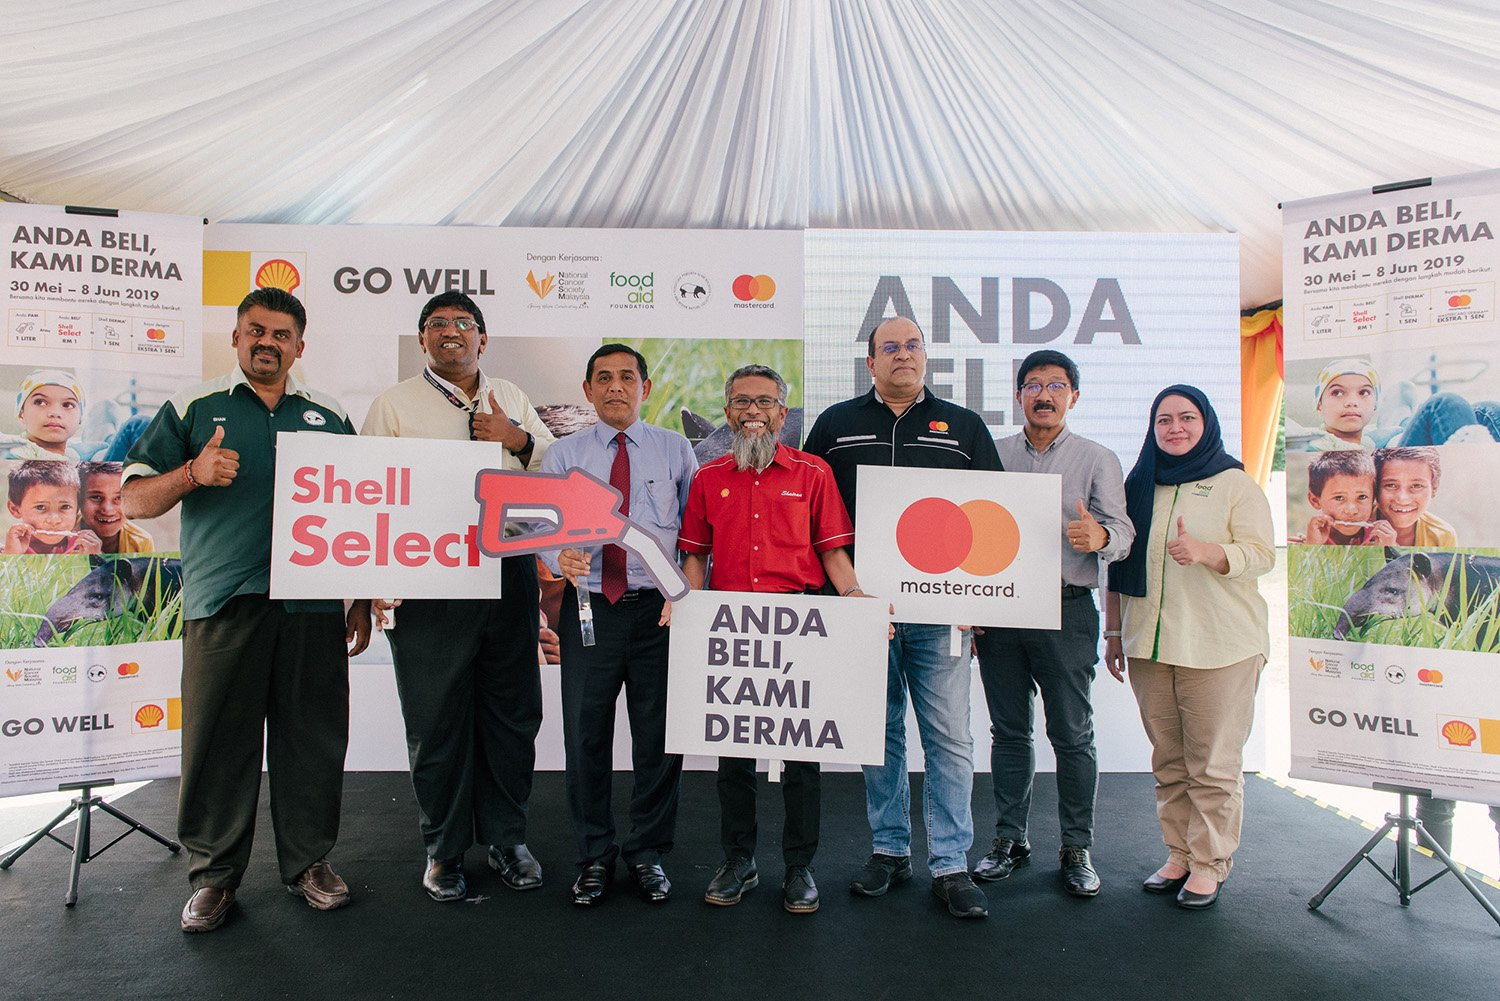 SHELL'S 'ANDA BELI, KAMI DERMA' RAYA CHARITY CAMPAIGN RAISES RM1.92MIL TO SPREAD THE SPIRIT OF CARING AND SHARING